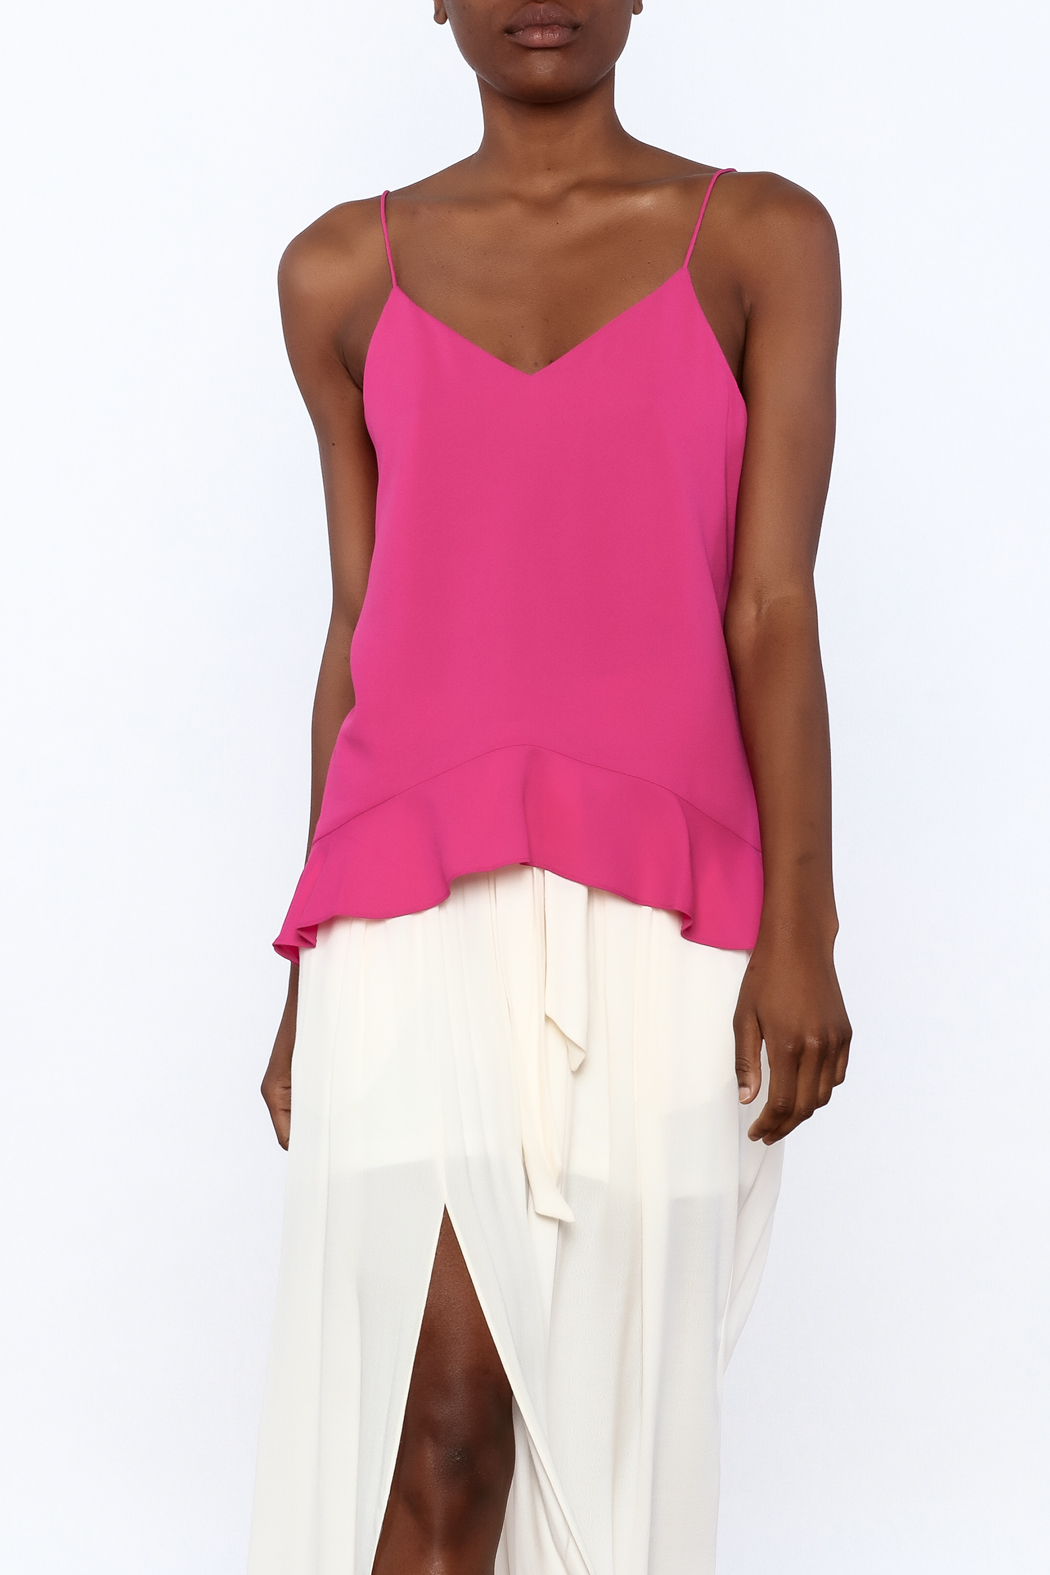 Cooper & Ella Hot Pink Sleeveless Top - Main Image